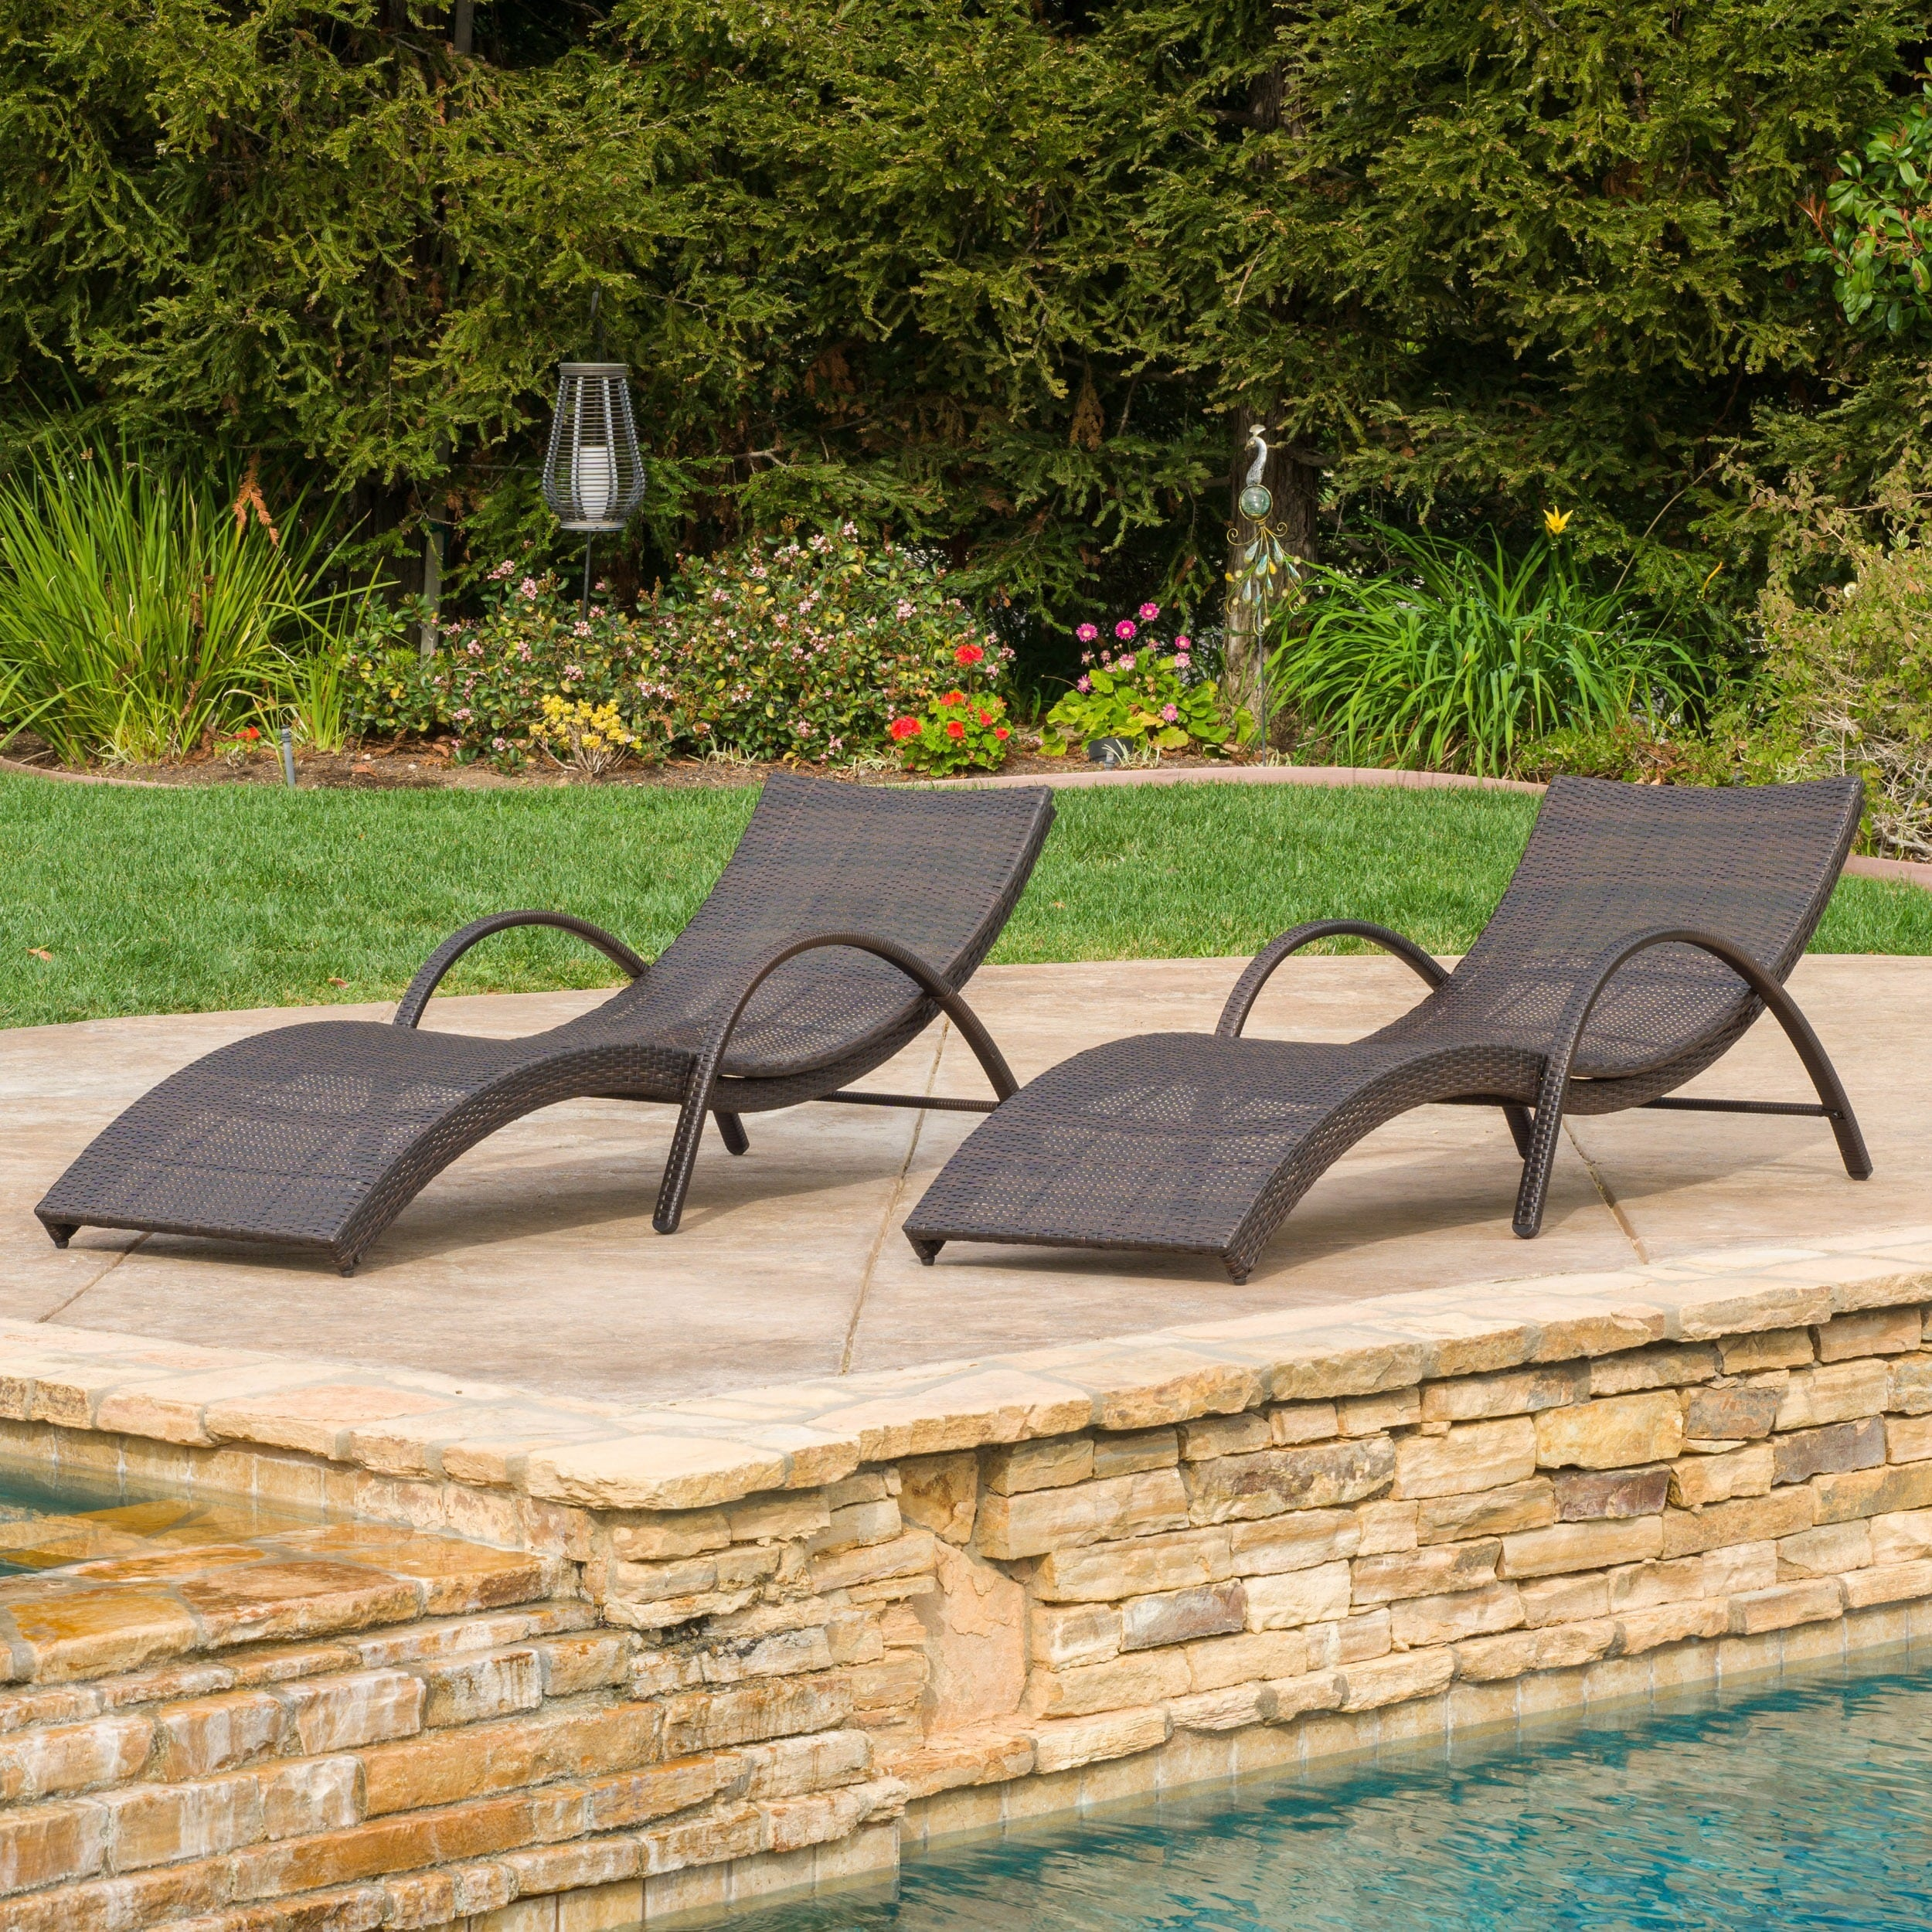 Phenomenal Acapulco Outdoor Wicker Folding Armed Chaise Lounge Set Of 2 By Christopher Knight Home Camellatalisay Diy Chair Ideas Camellatalisaycom